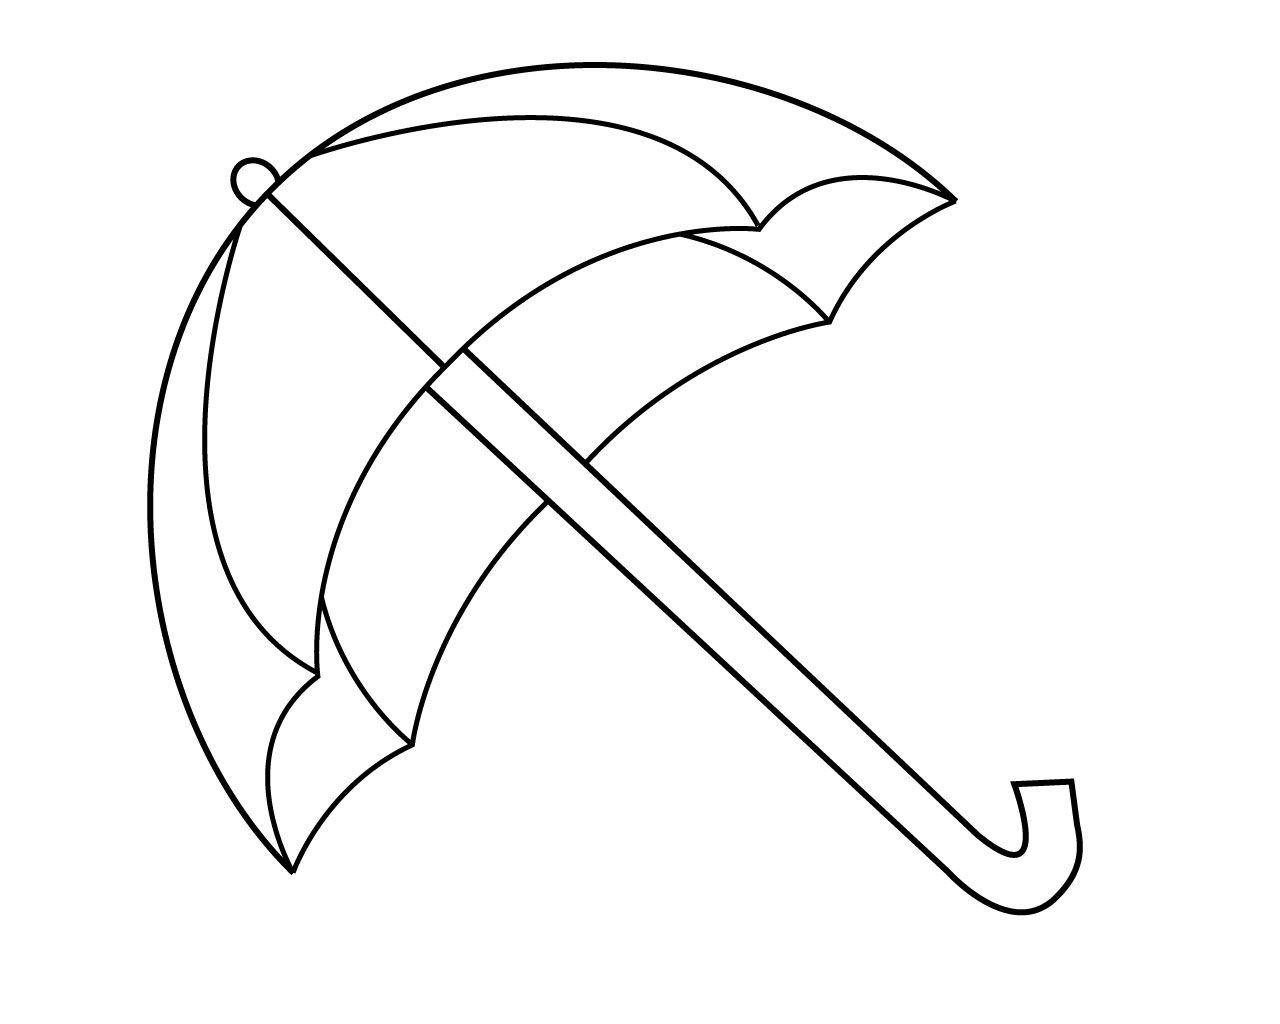 Umbrella Coloring Pages For Your Little Ones (With images